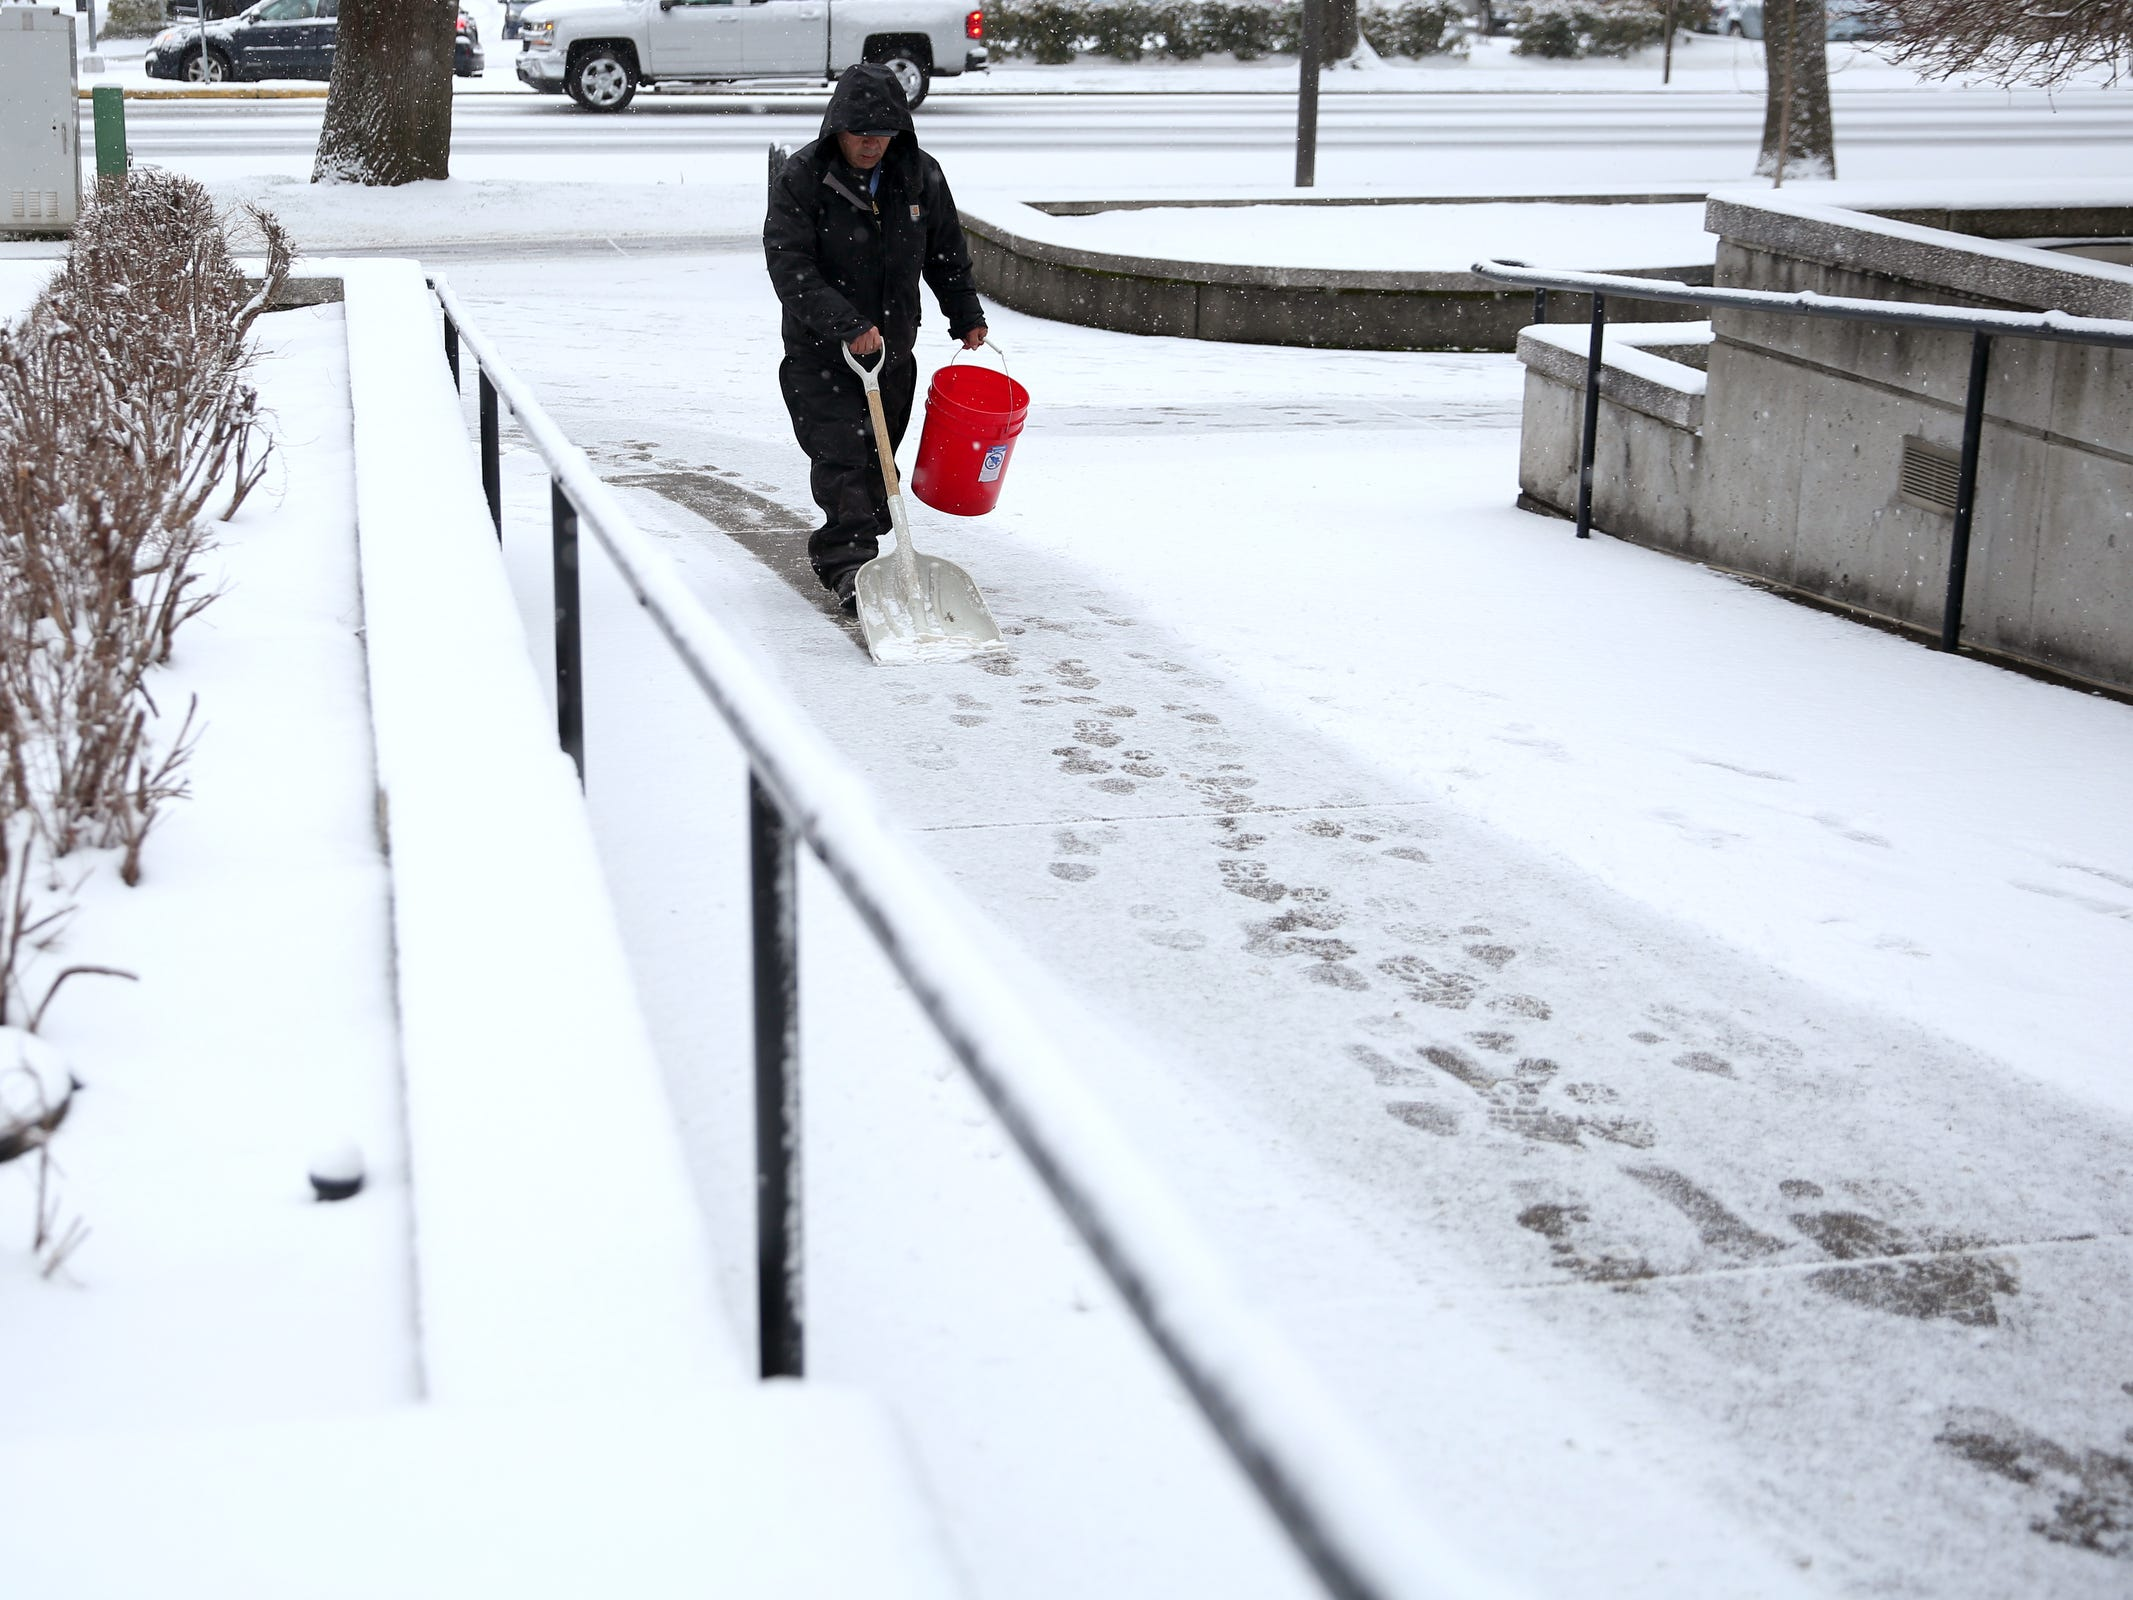 Domingo Hildalgo, a maintenance worker with the State of Oregon, shovels a walkway outside the Oregon Department of Human Services office as snow falls in Salem on Wednesday, Feb. 27, 2019.